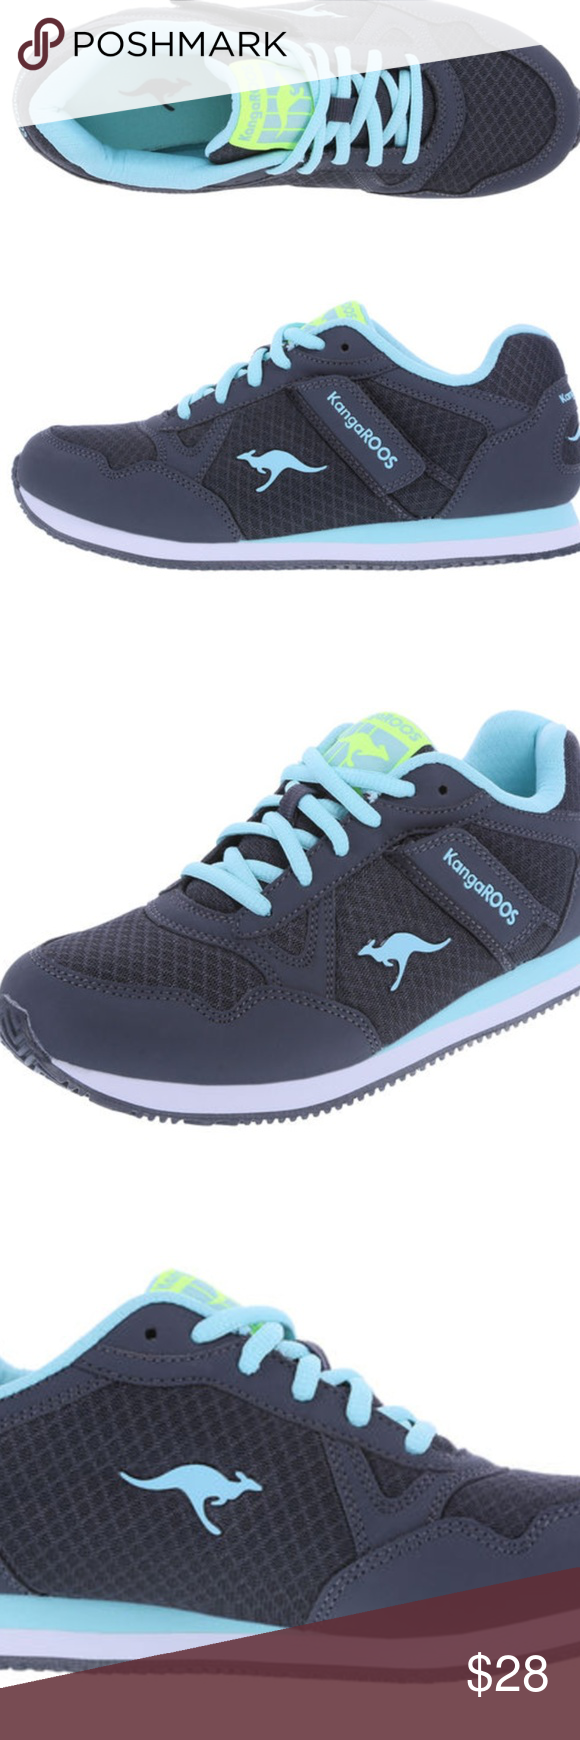 Kangaroos Athletic In 5 7 Box Jogger Shaker Size Shoes Brand New qanwRqxr